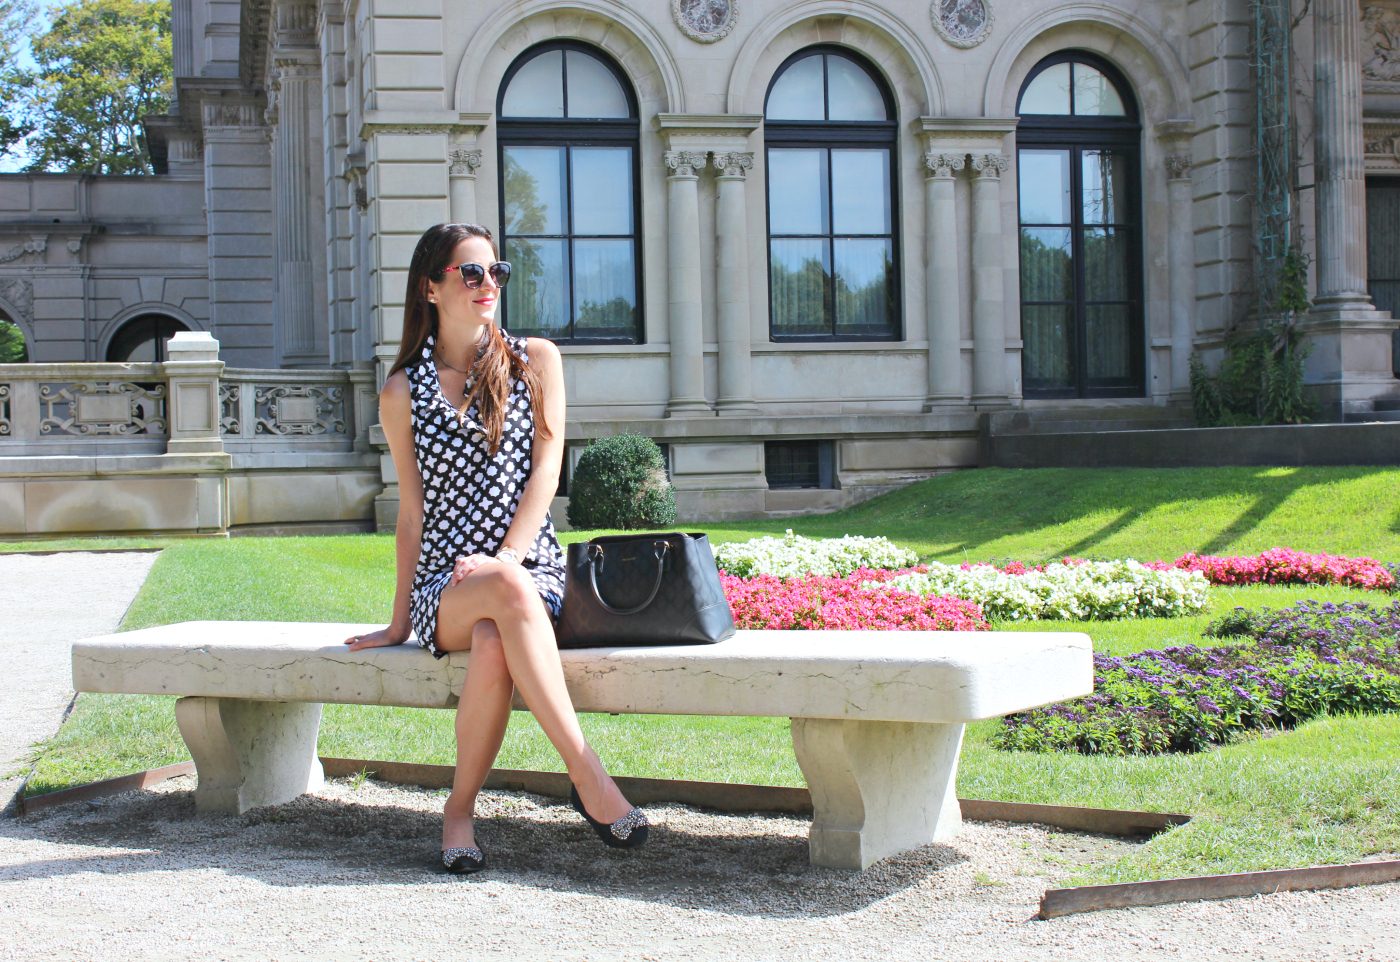 Brit Rose black and white ruffle dress for touring The Breakers in Newport, Rhode Island